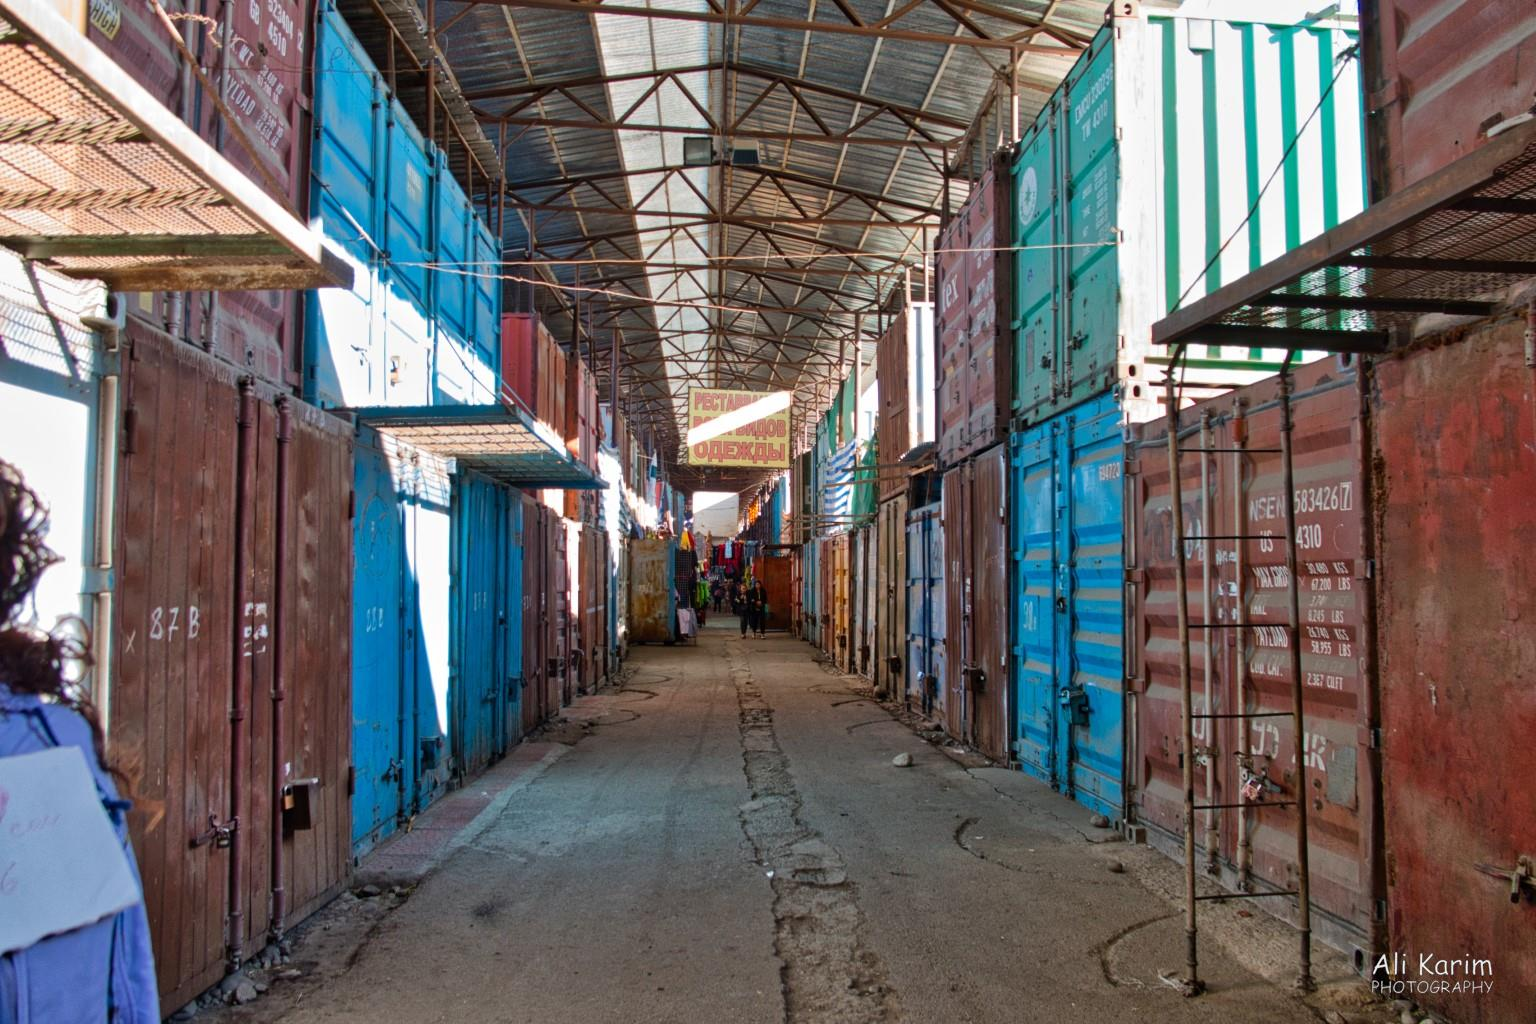 Silk Road 14 Bishkek Double stacked container stalls of the market, waiting to open for trade